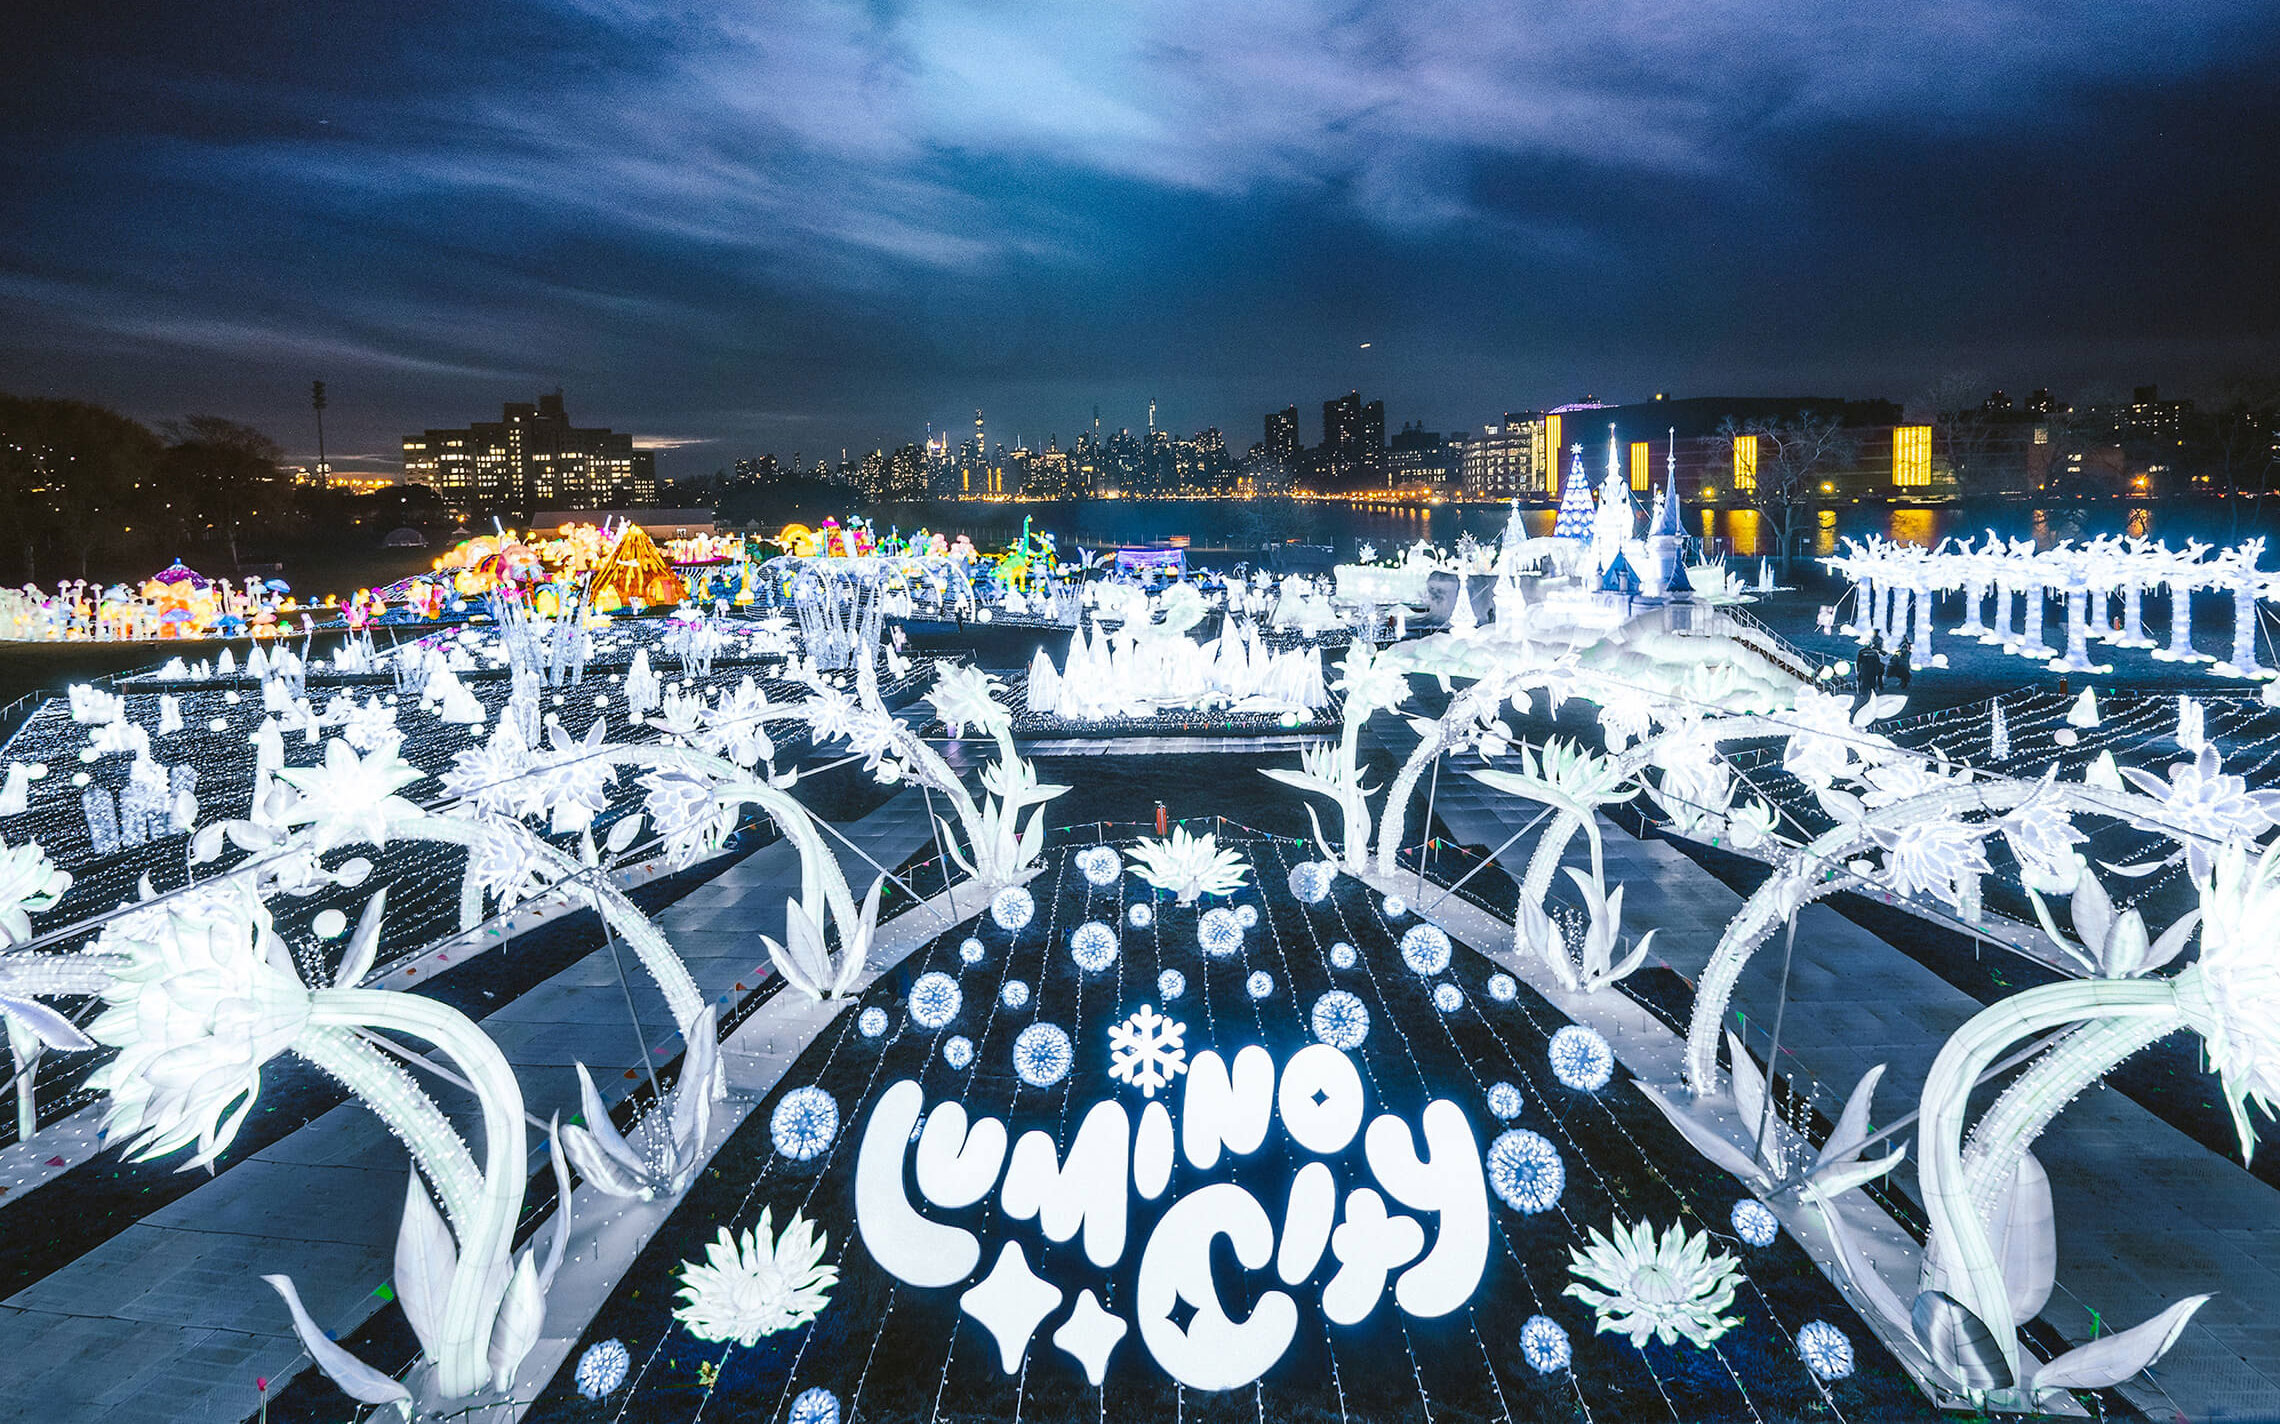 the-icy-flower-tunnel-the-winter-fantasy-light-arts-luminocity-festival